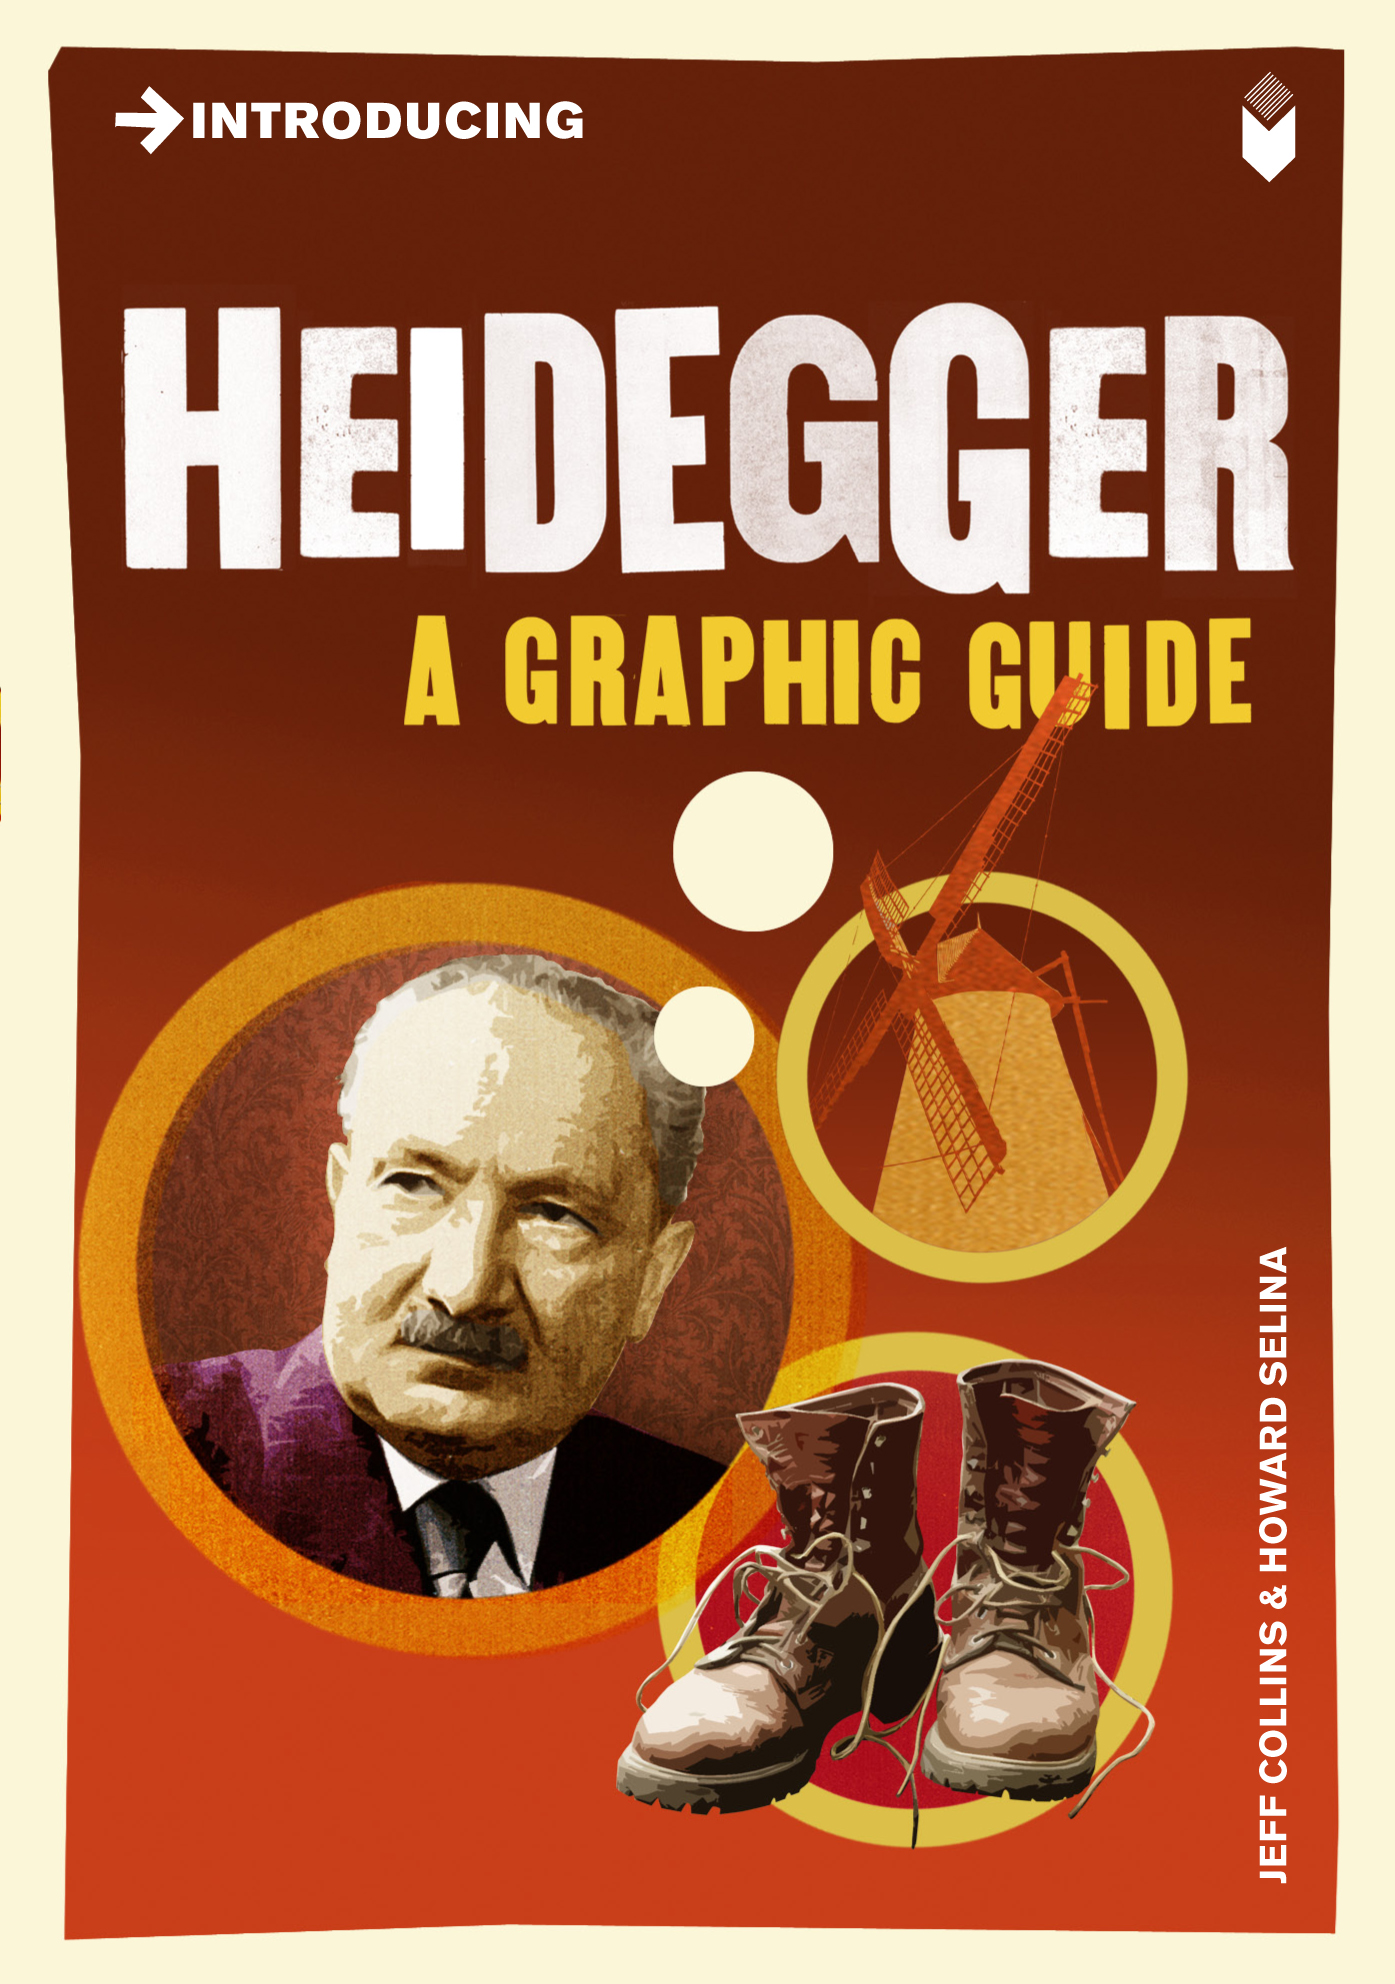 Introducing Heidegger. A Graphic Guide effects of secular literature on the adventist philosophy of education